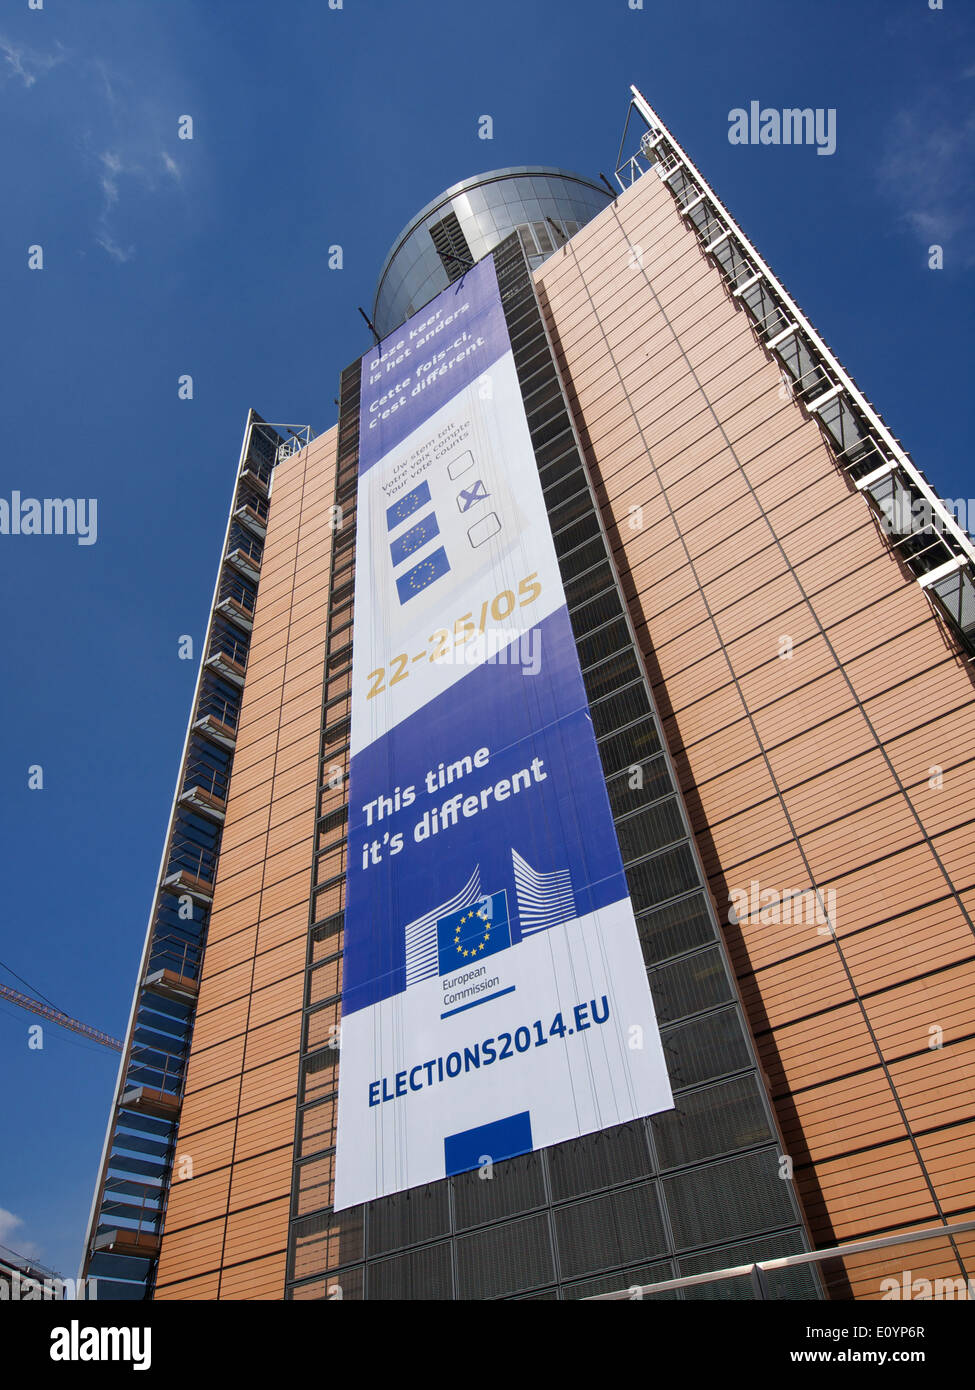 European elections may 2014 banner on the Berlaymont building in Brussels, Belgium - Stock Image